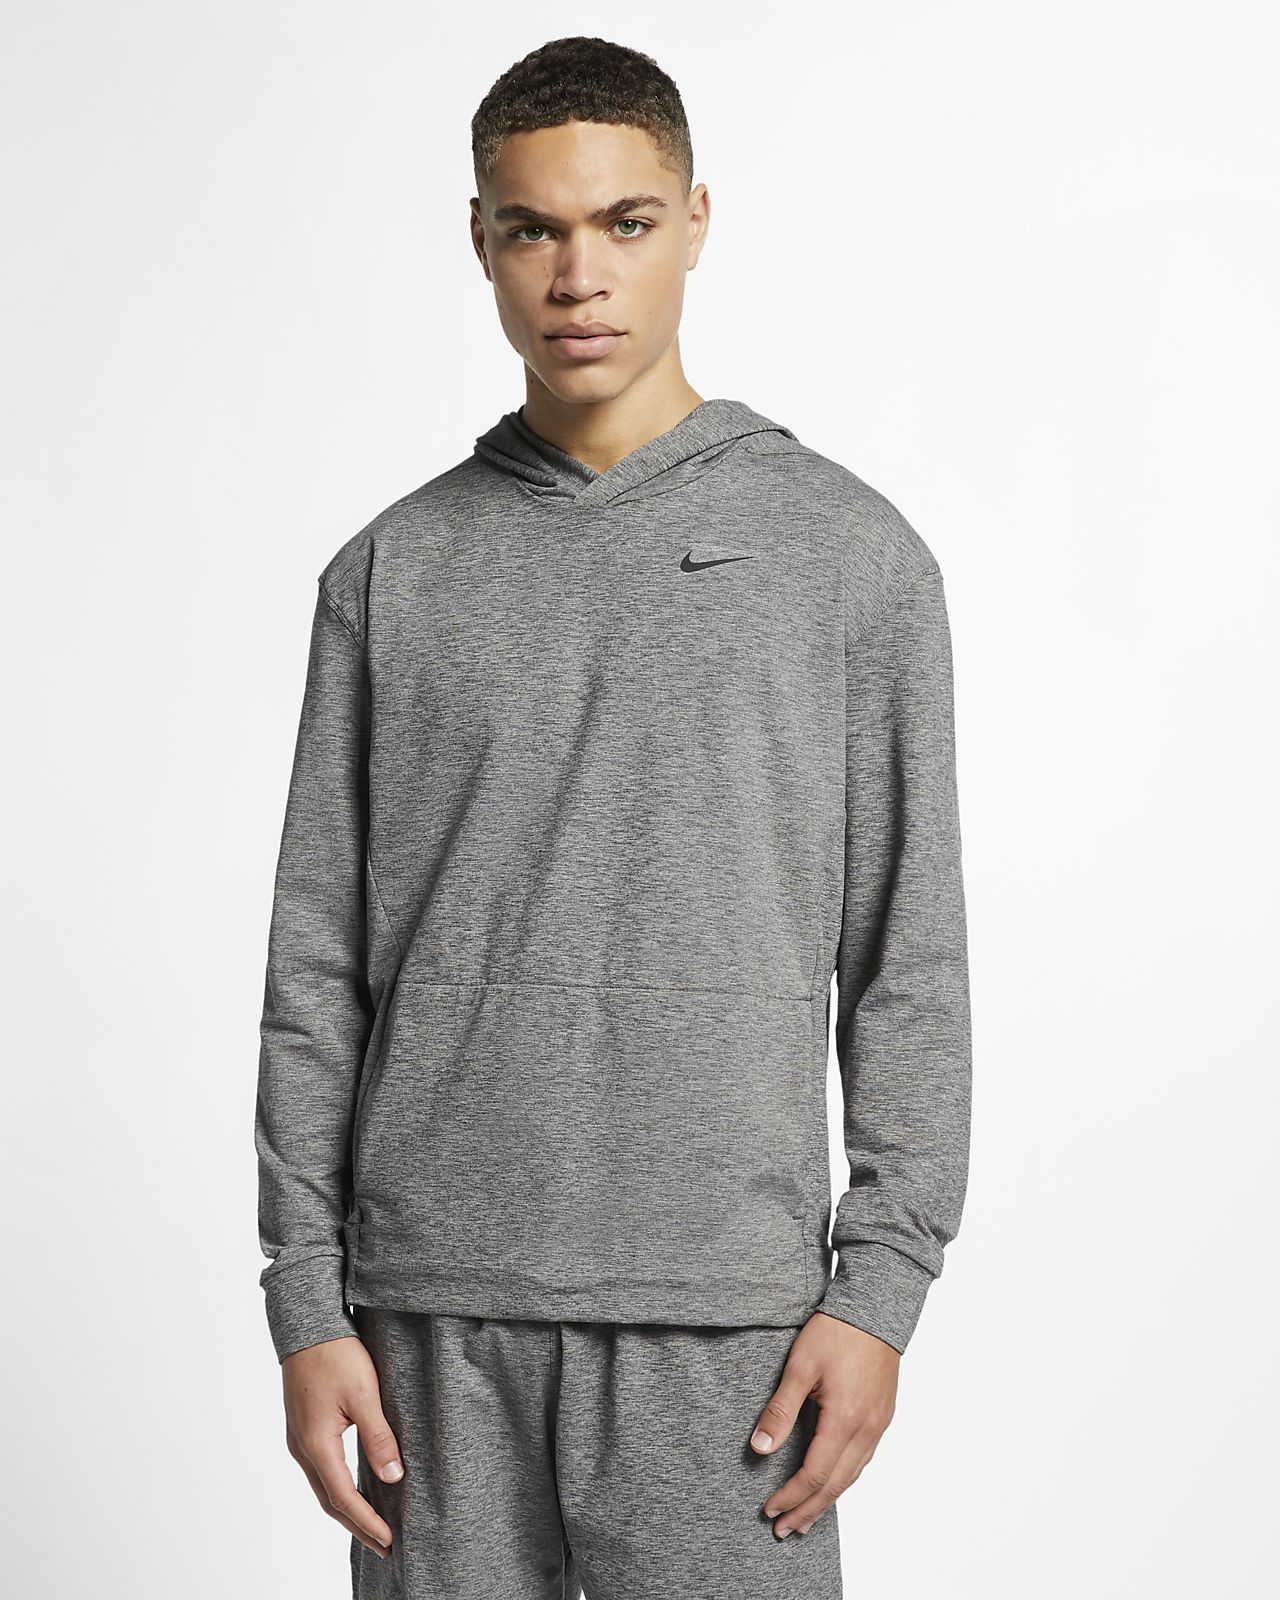 Nike Dri-FIT Men's Pullover Long-Sleeve Yoga Training Hoodie